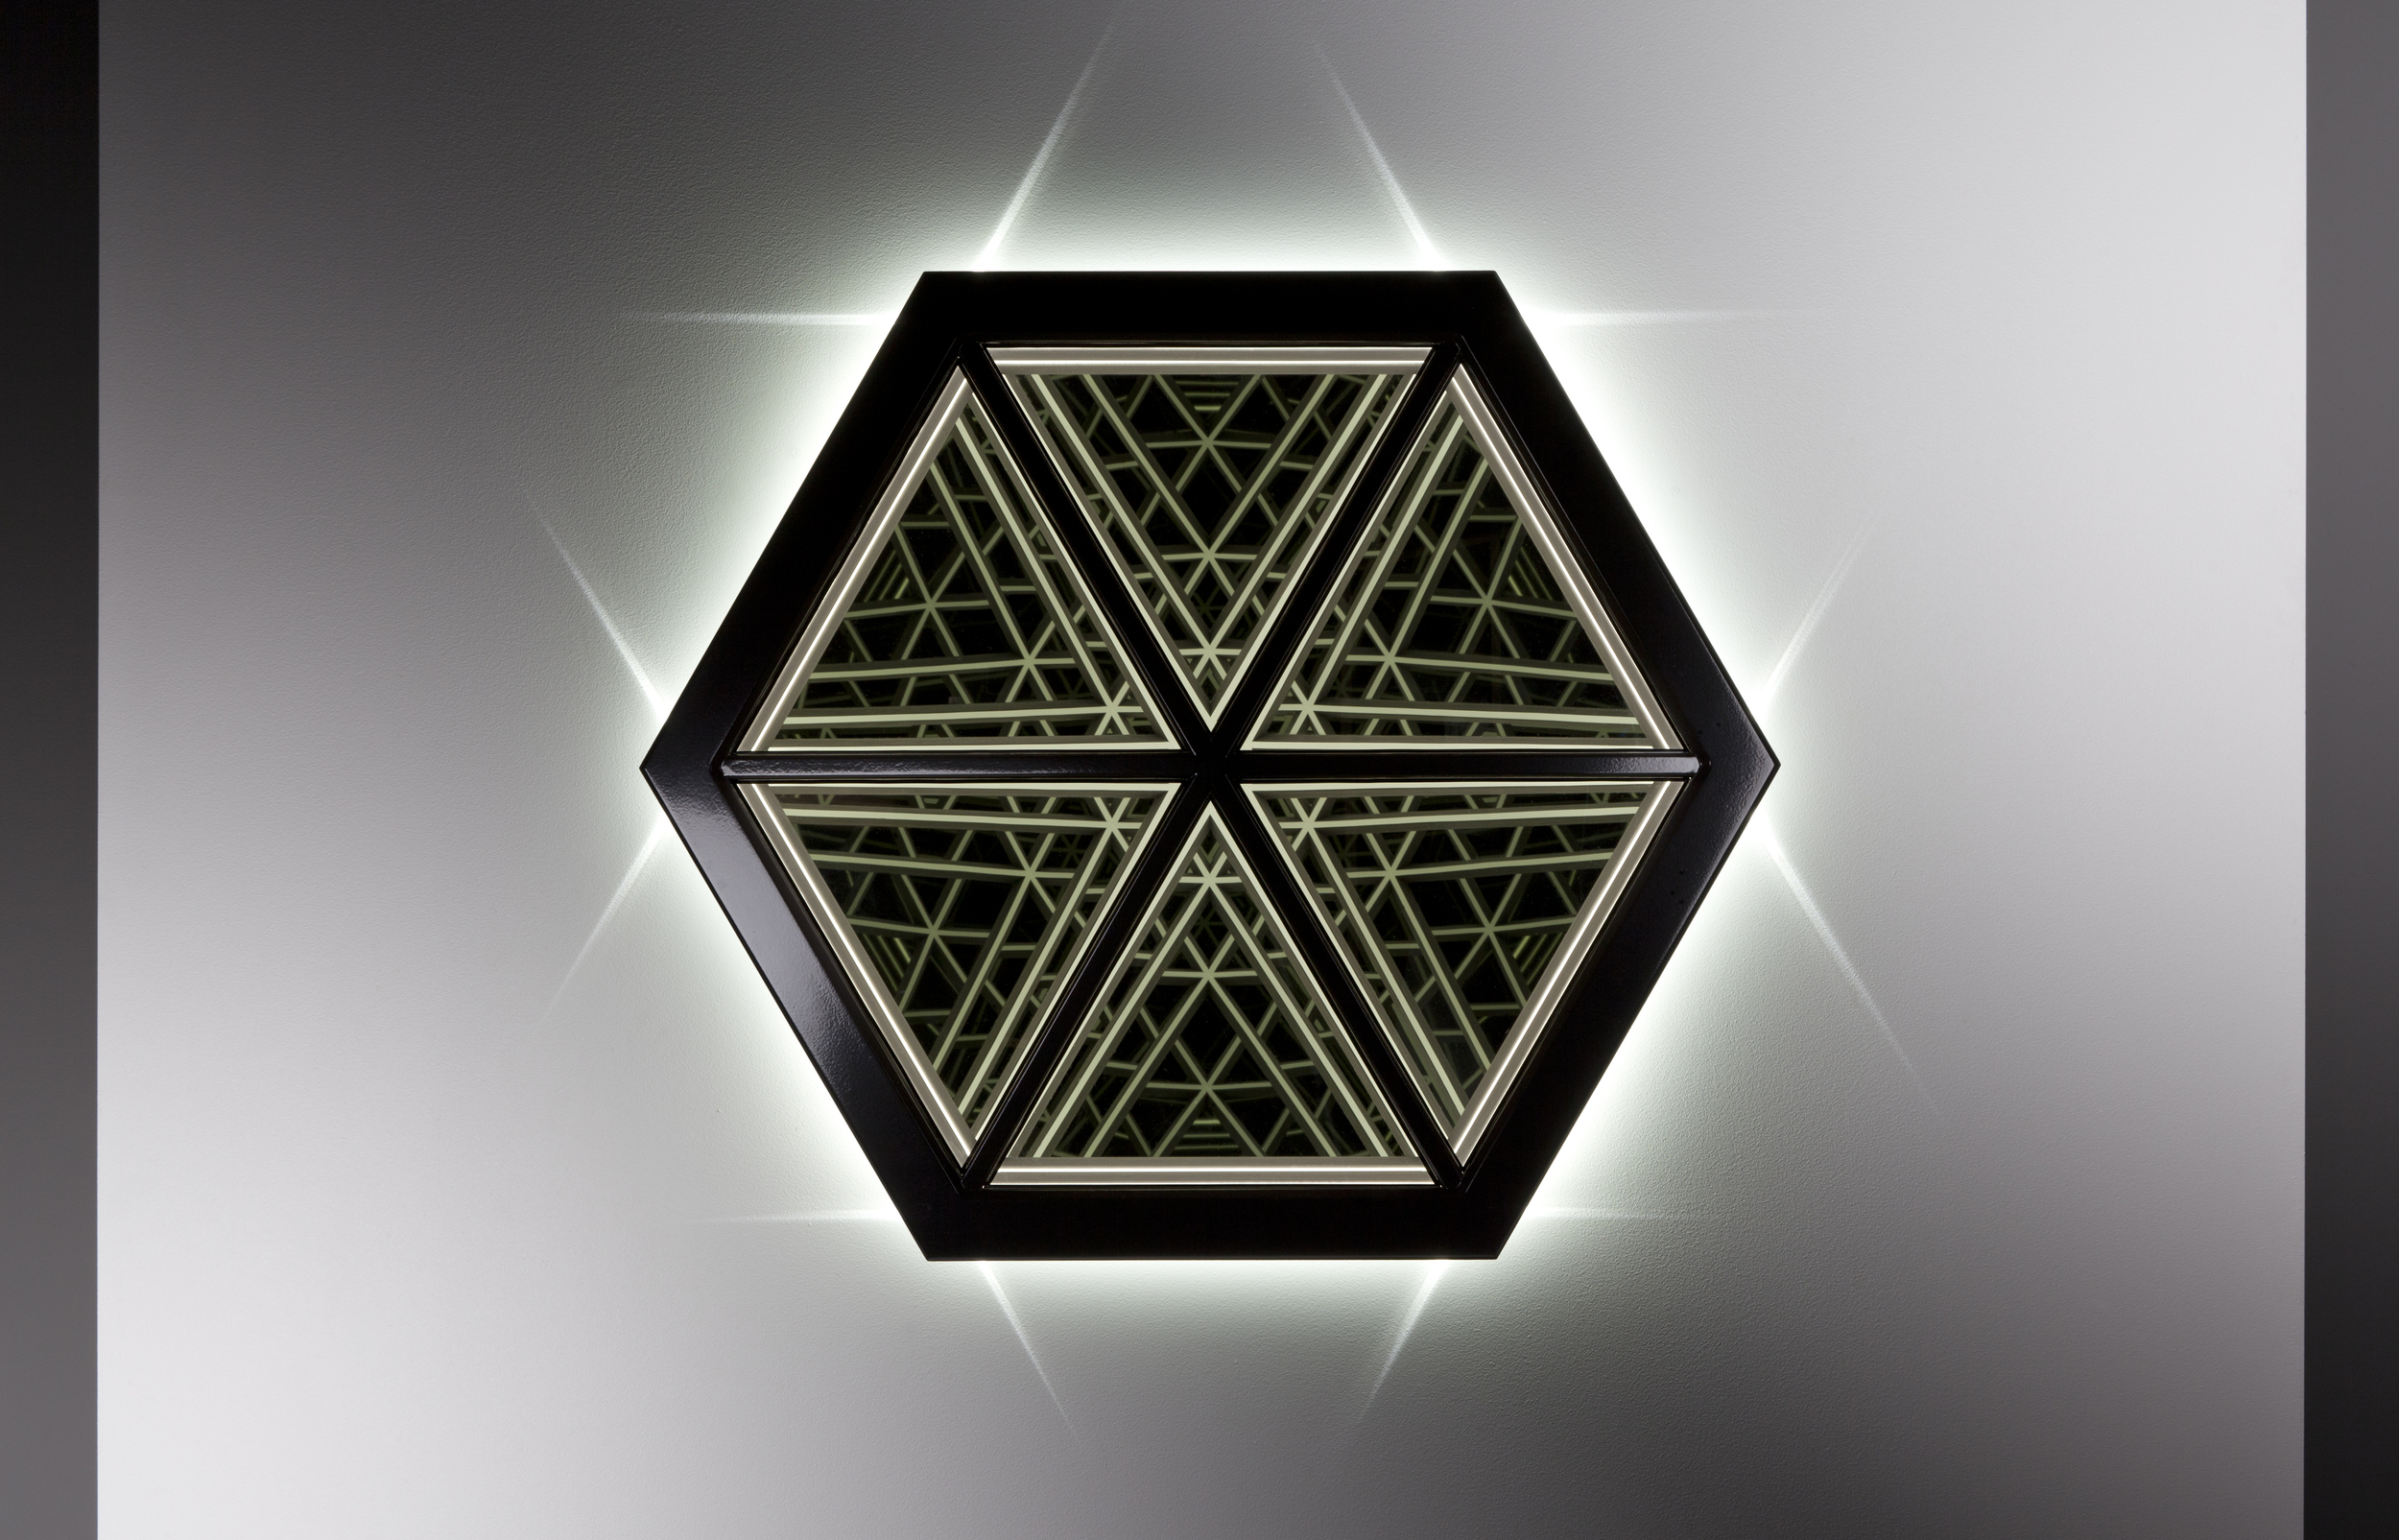 Exhale , wood, mirror, reflective glass, MDF and LED lights,76 x 88 x 17cm. Photo: Pippy Mount.